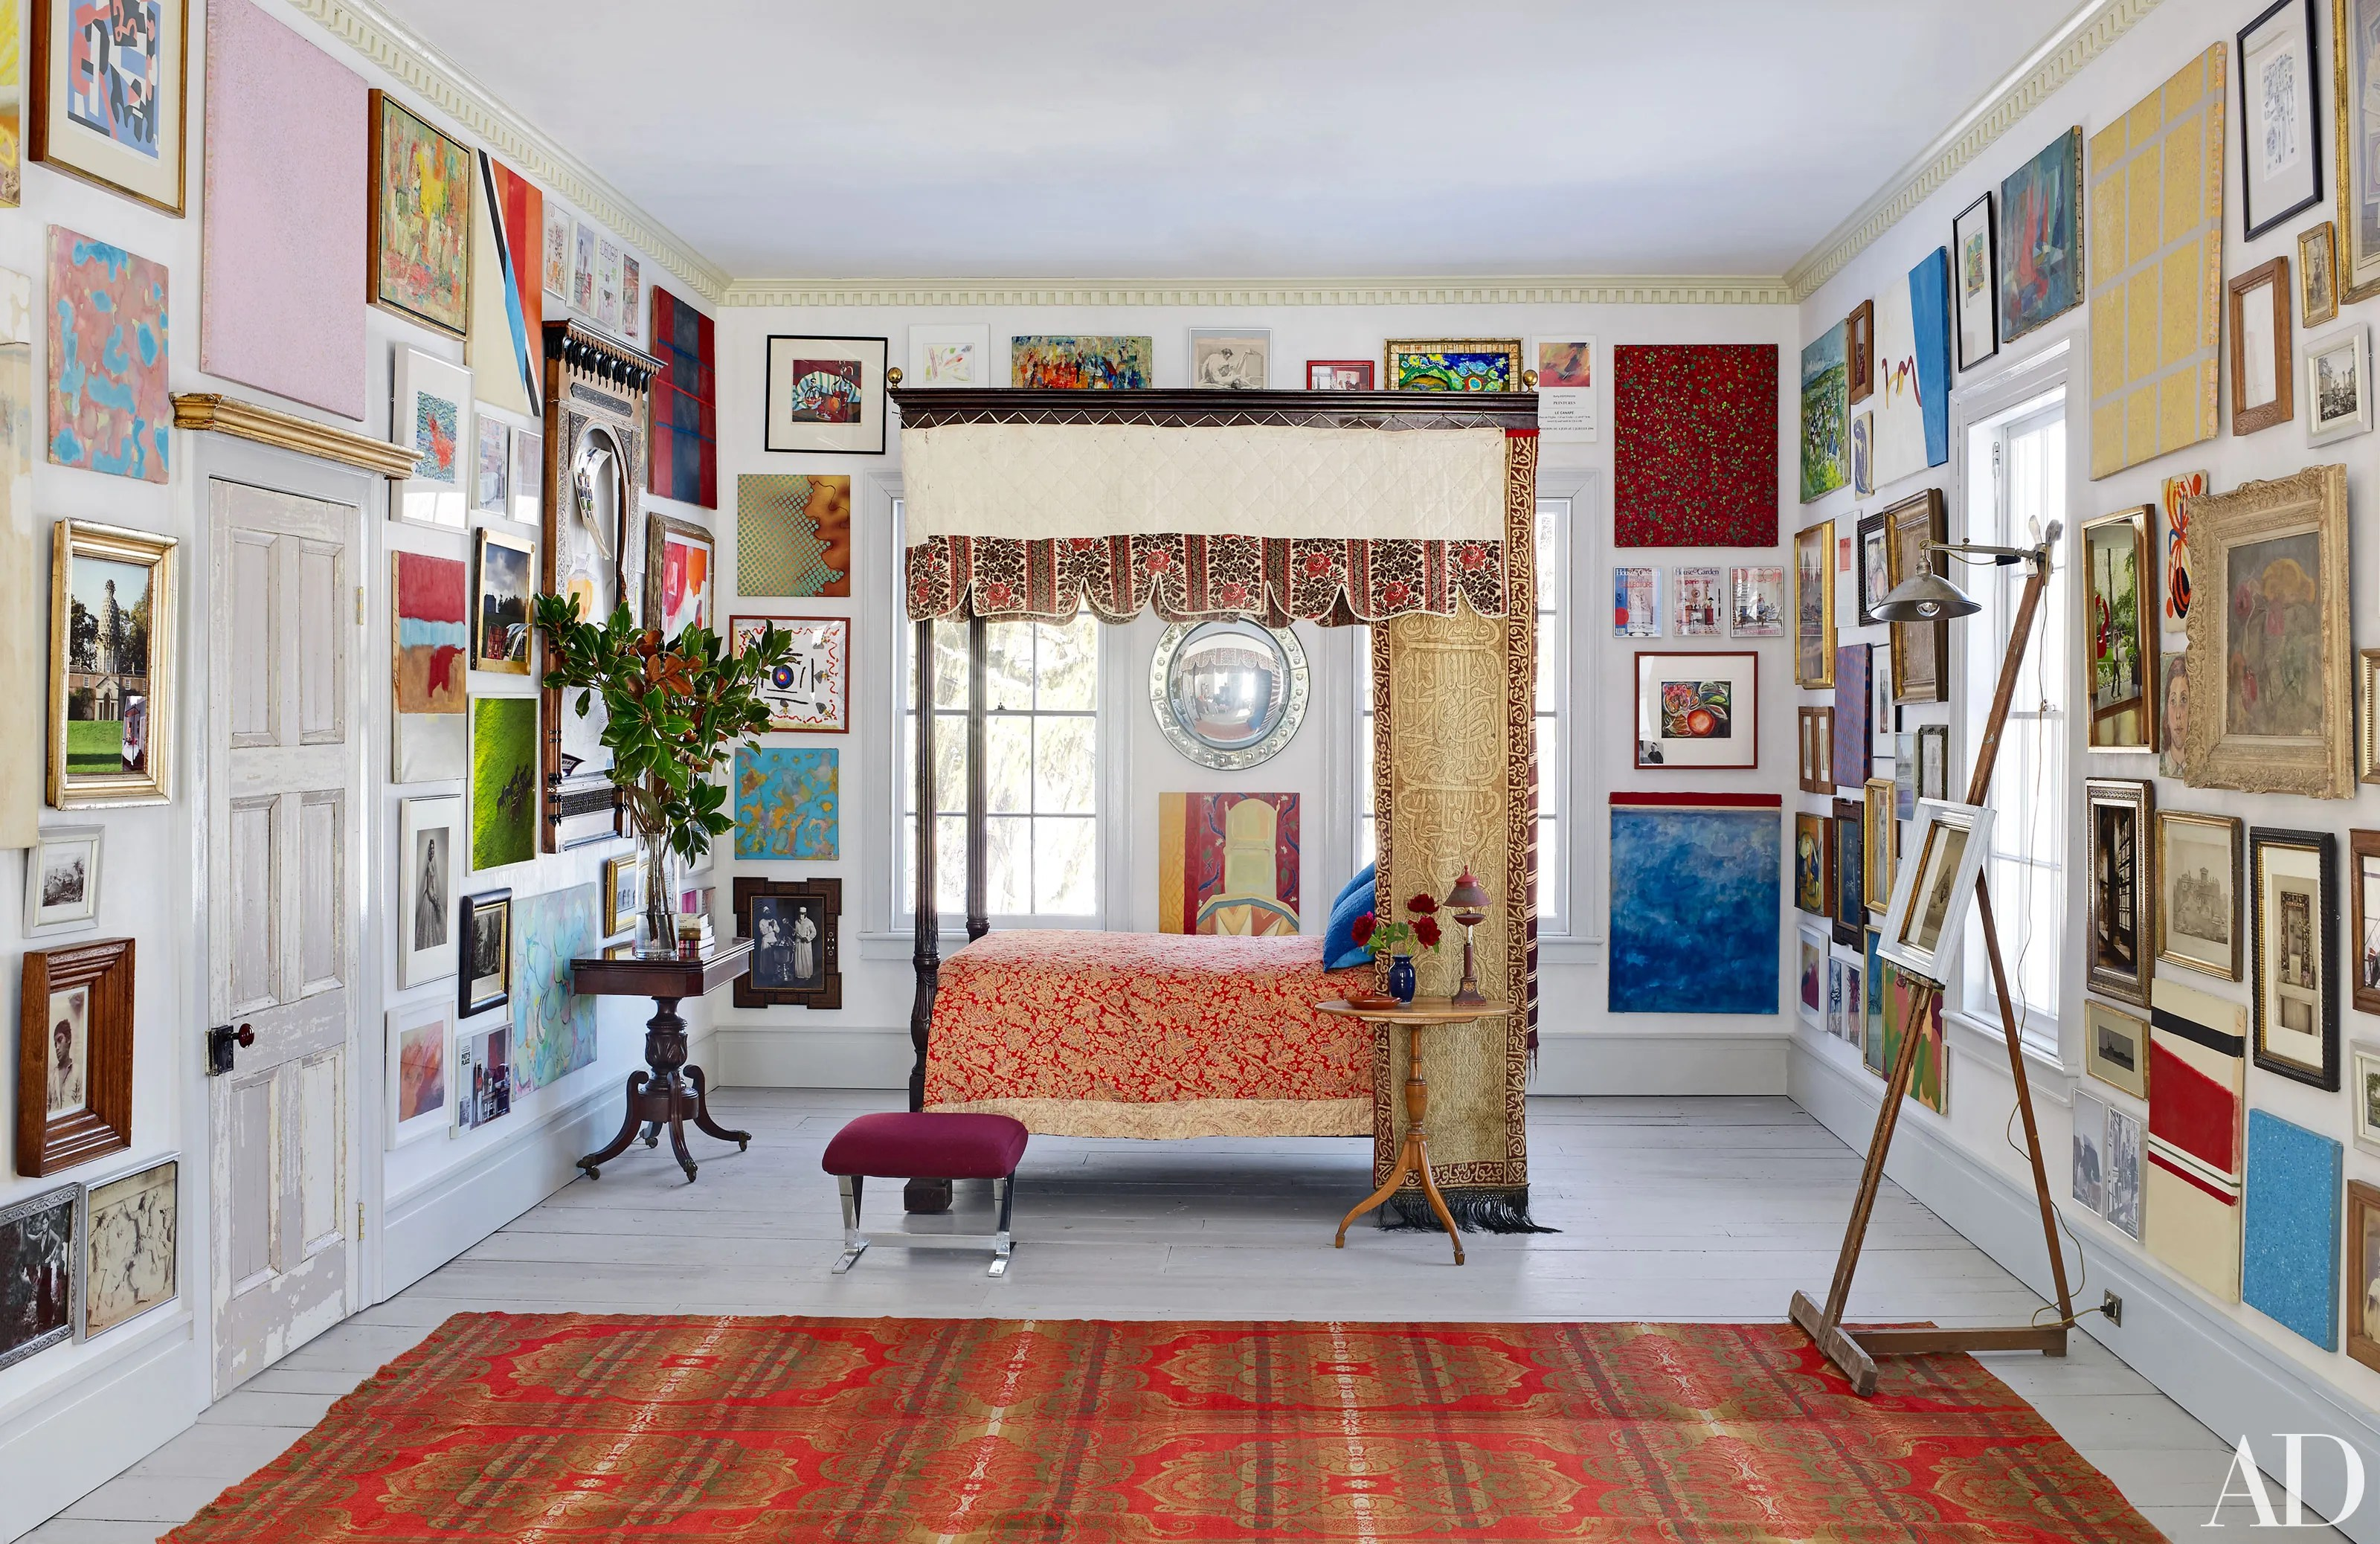 Tour The Greek Revival House Of Photographer Pieter